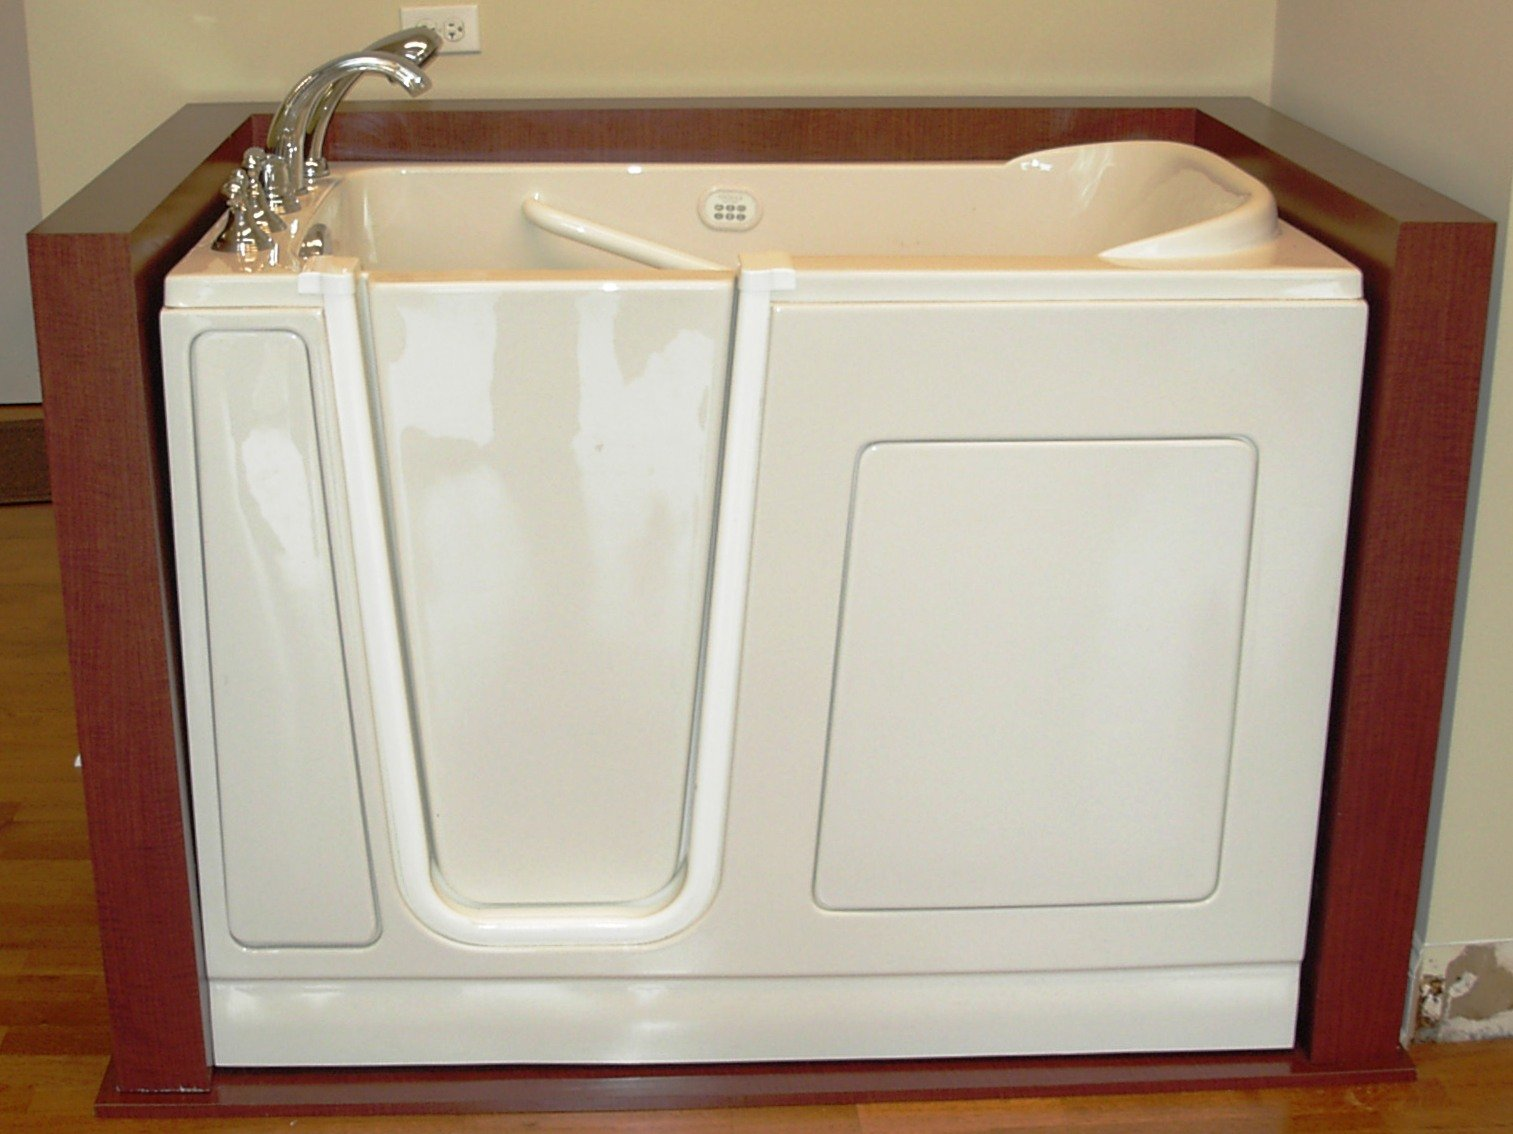 Safety tubs offer individuals the ability to maintain a safe lifestyle, as well as regain their independence